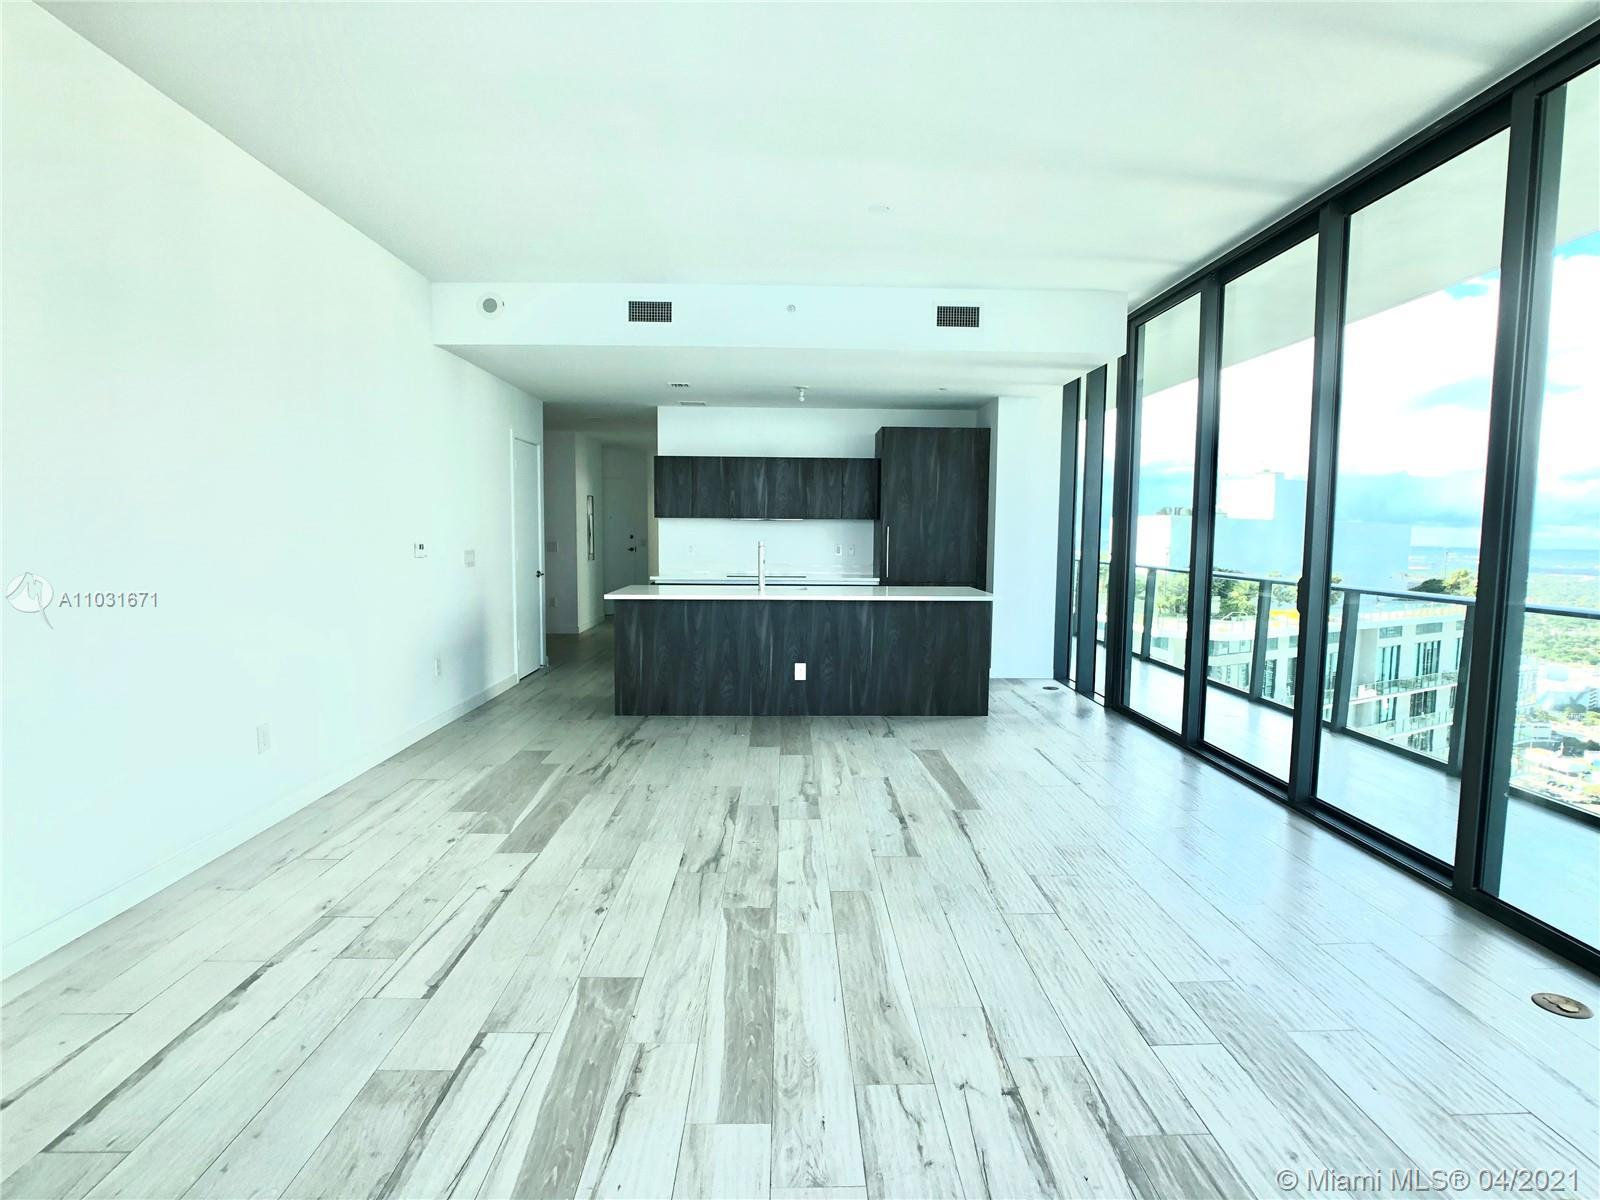 Breathtaking flow-through, 3 bedrooms & 3 bathrooms + Den waterfront unit with private elevator and